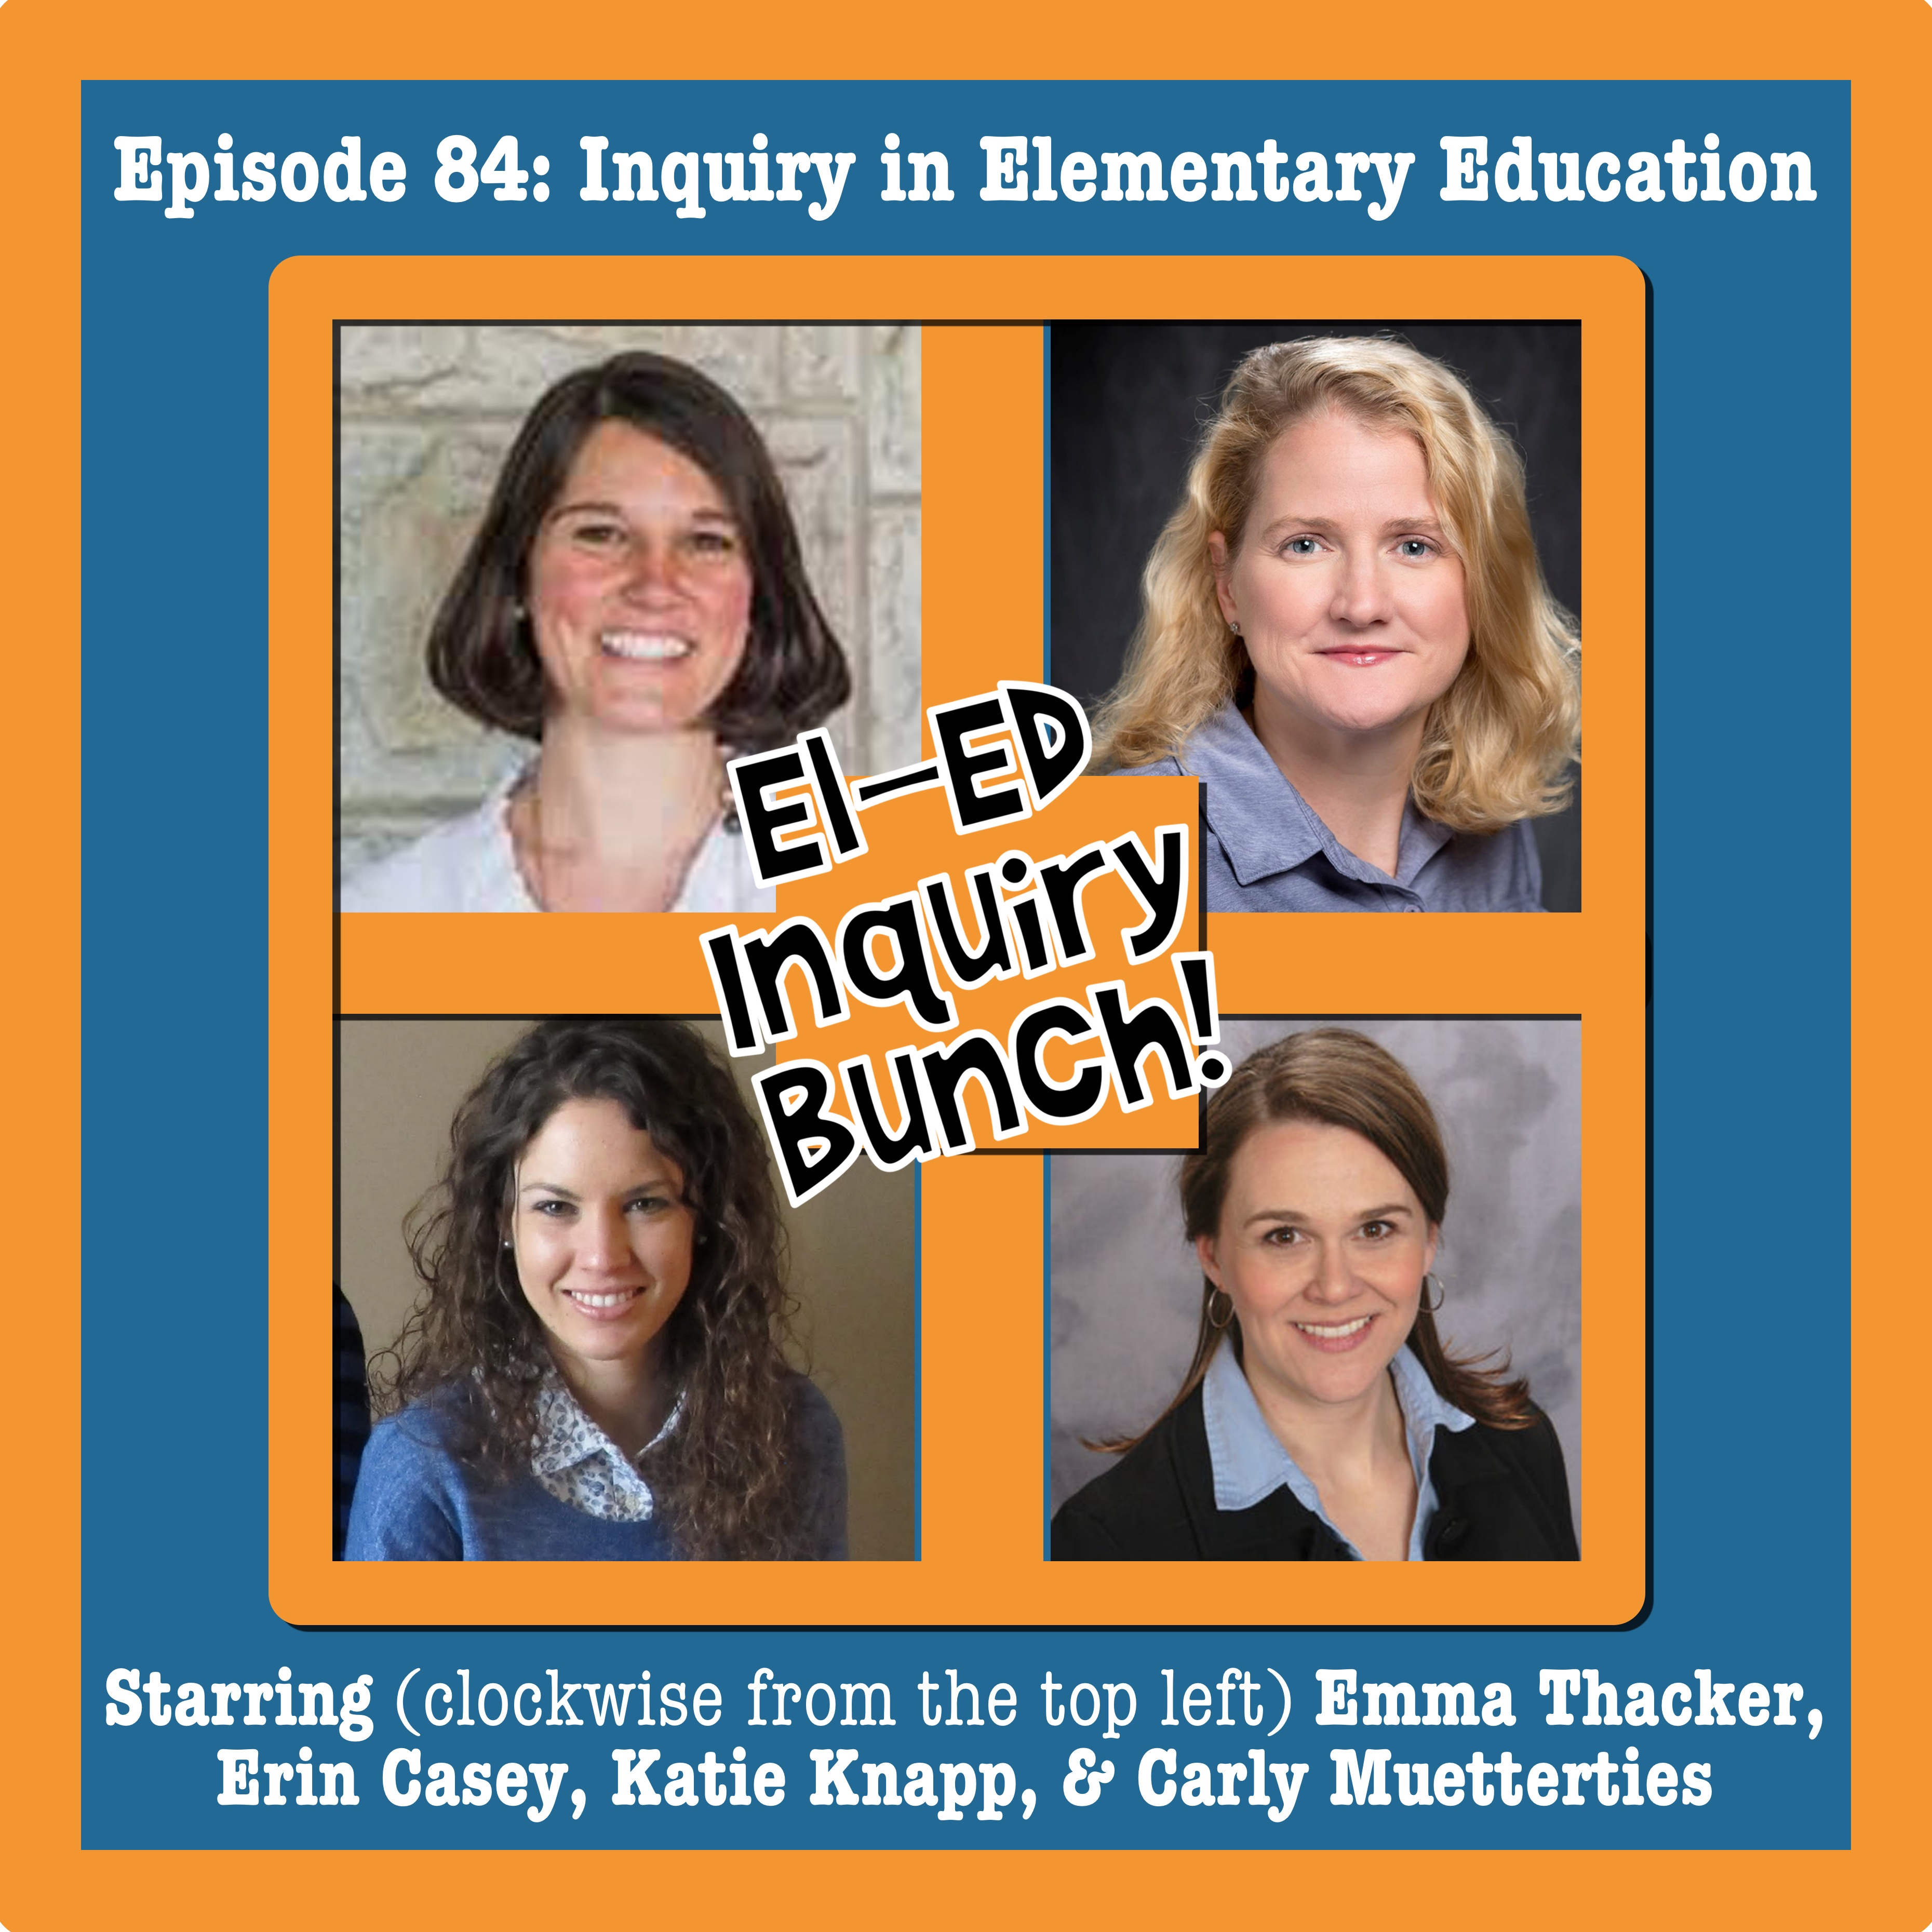 Episode 84: Inquiry in Elementary Education – Visions of